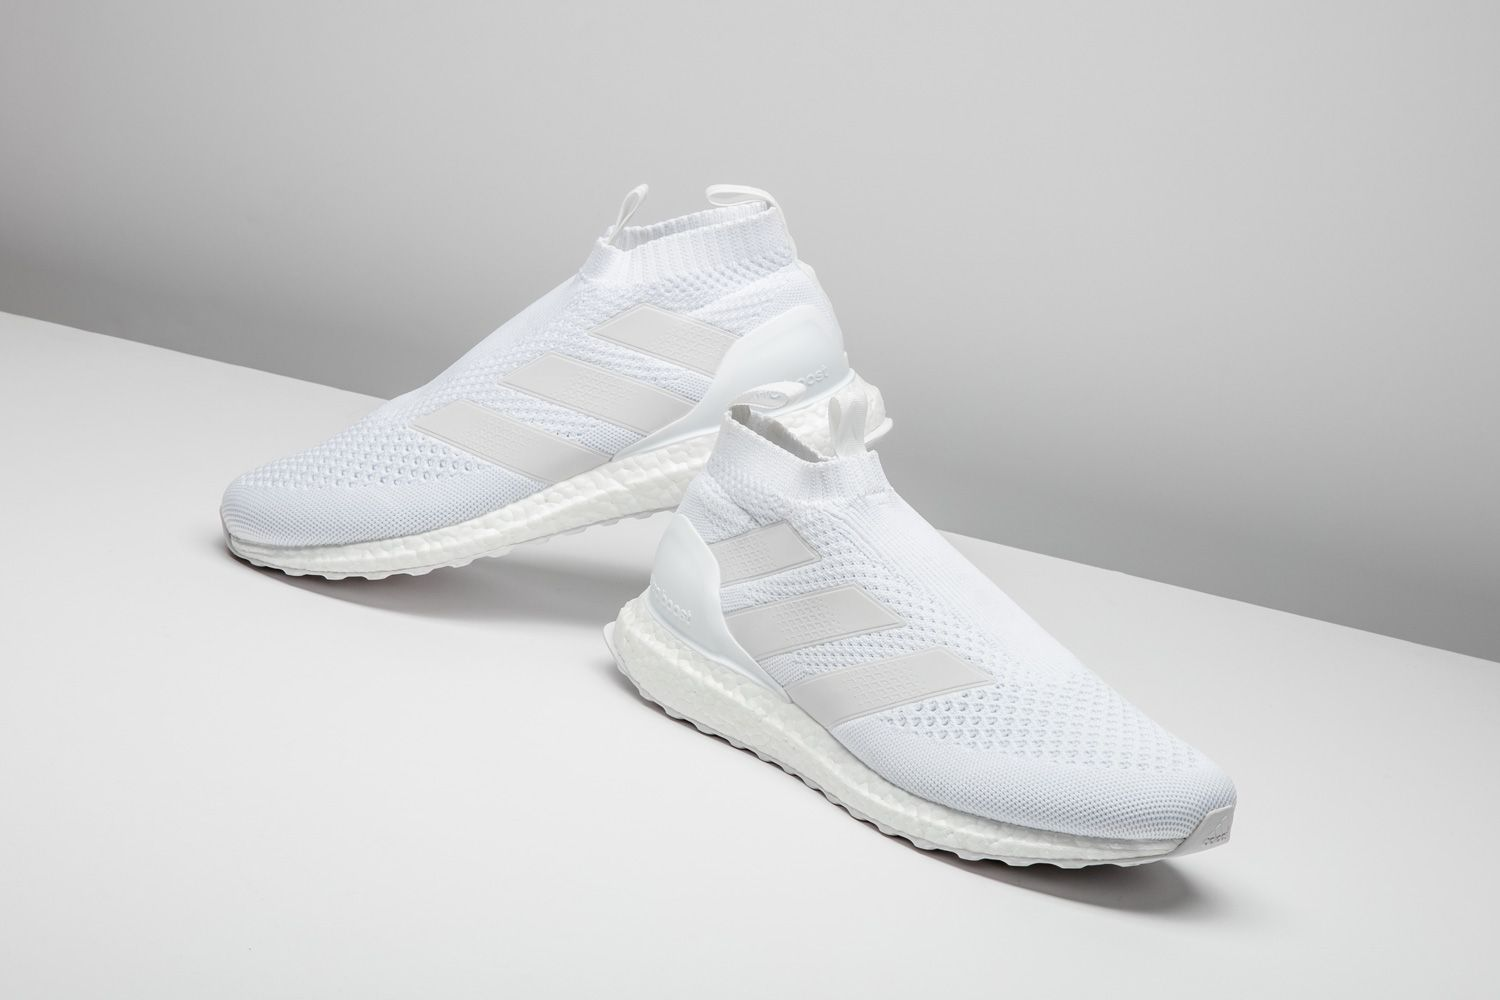 sports shoes ca0f6 fb3d1 The adidas ACE 16+ Purecontrol Ultra Boost in the icy white colorway is a  fallwinter essential. adidas